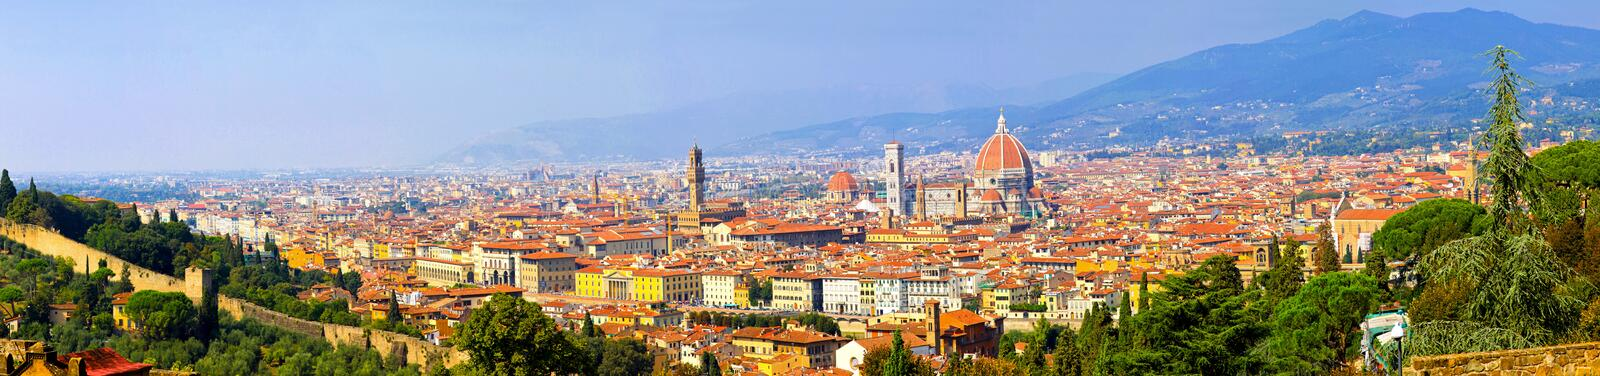 Panorama di Firenze immagine stock